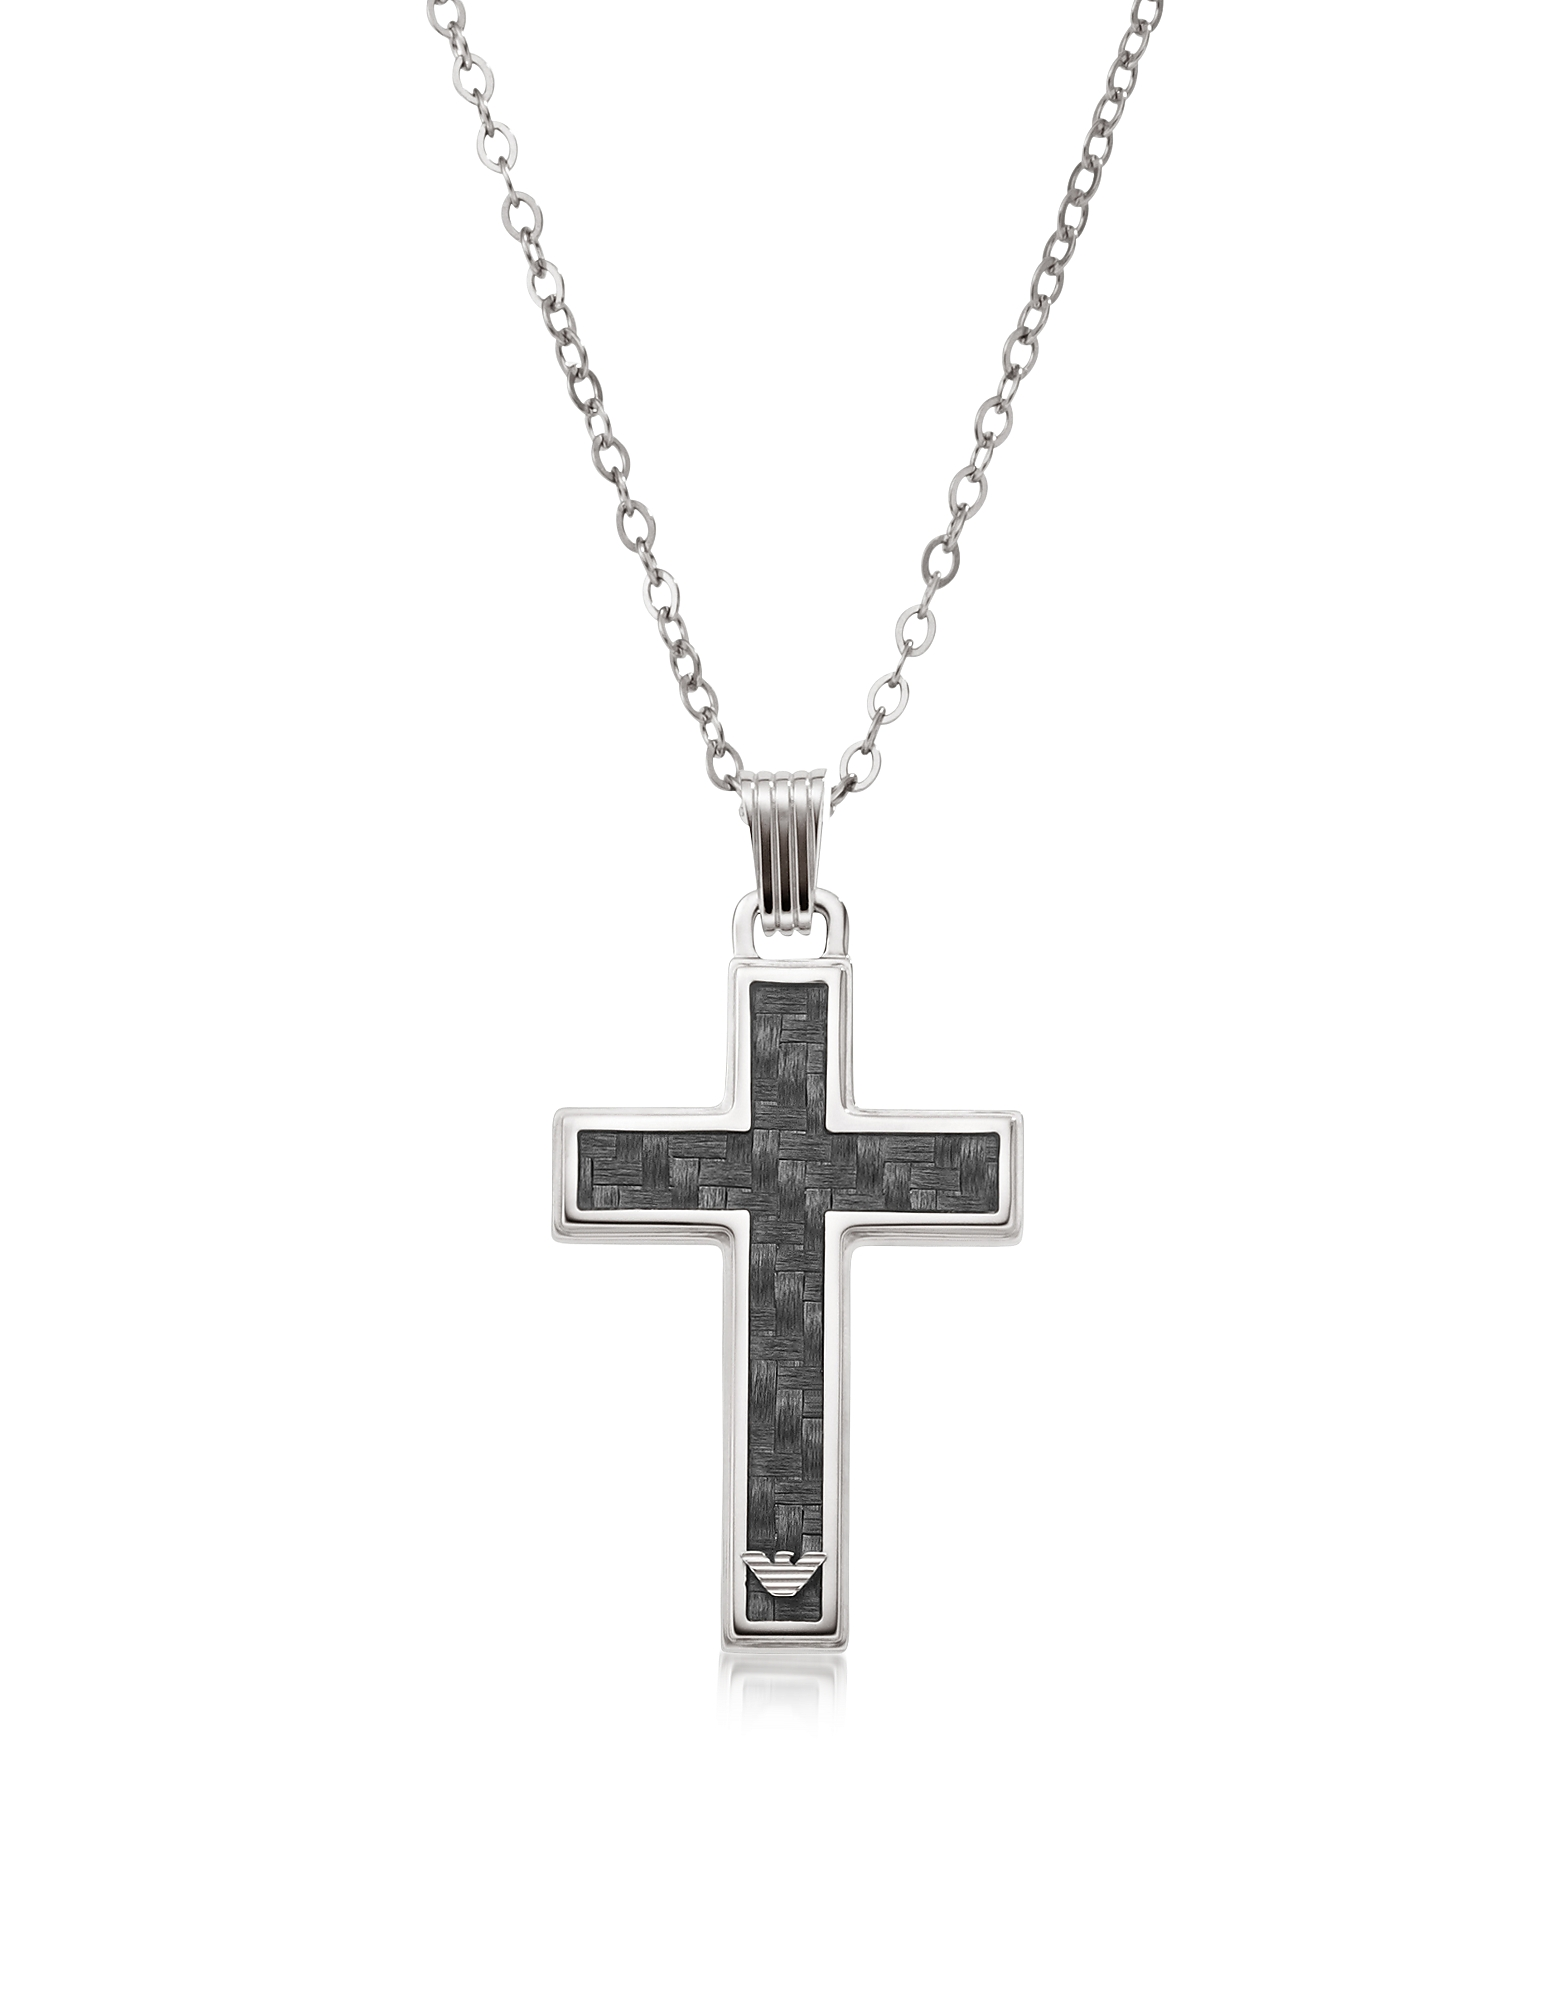 Silver Tone Stainless Steel Men's Necklace от Forzieri.com INT